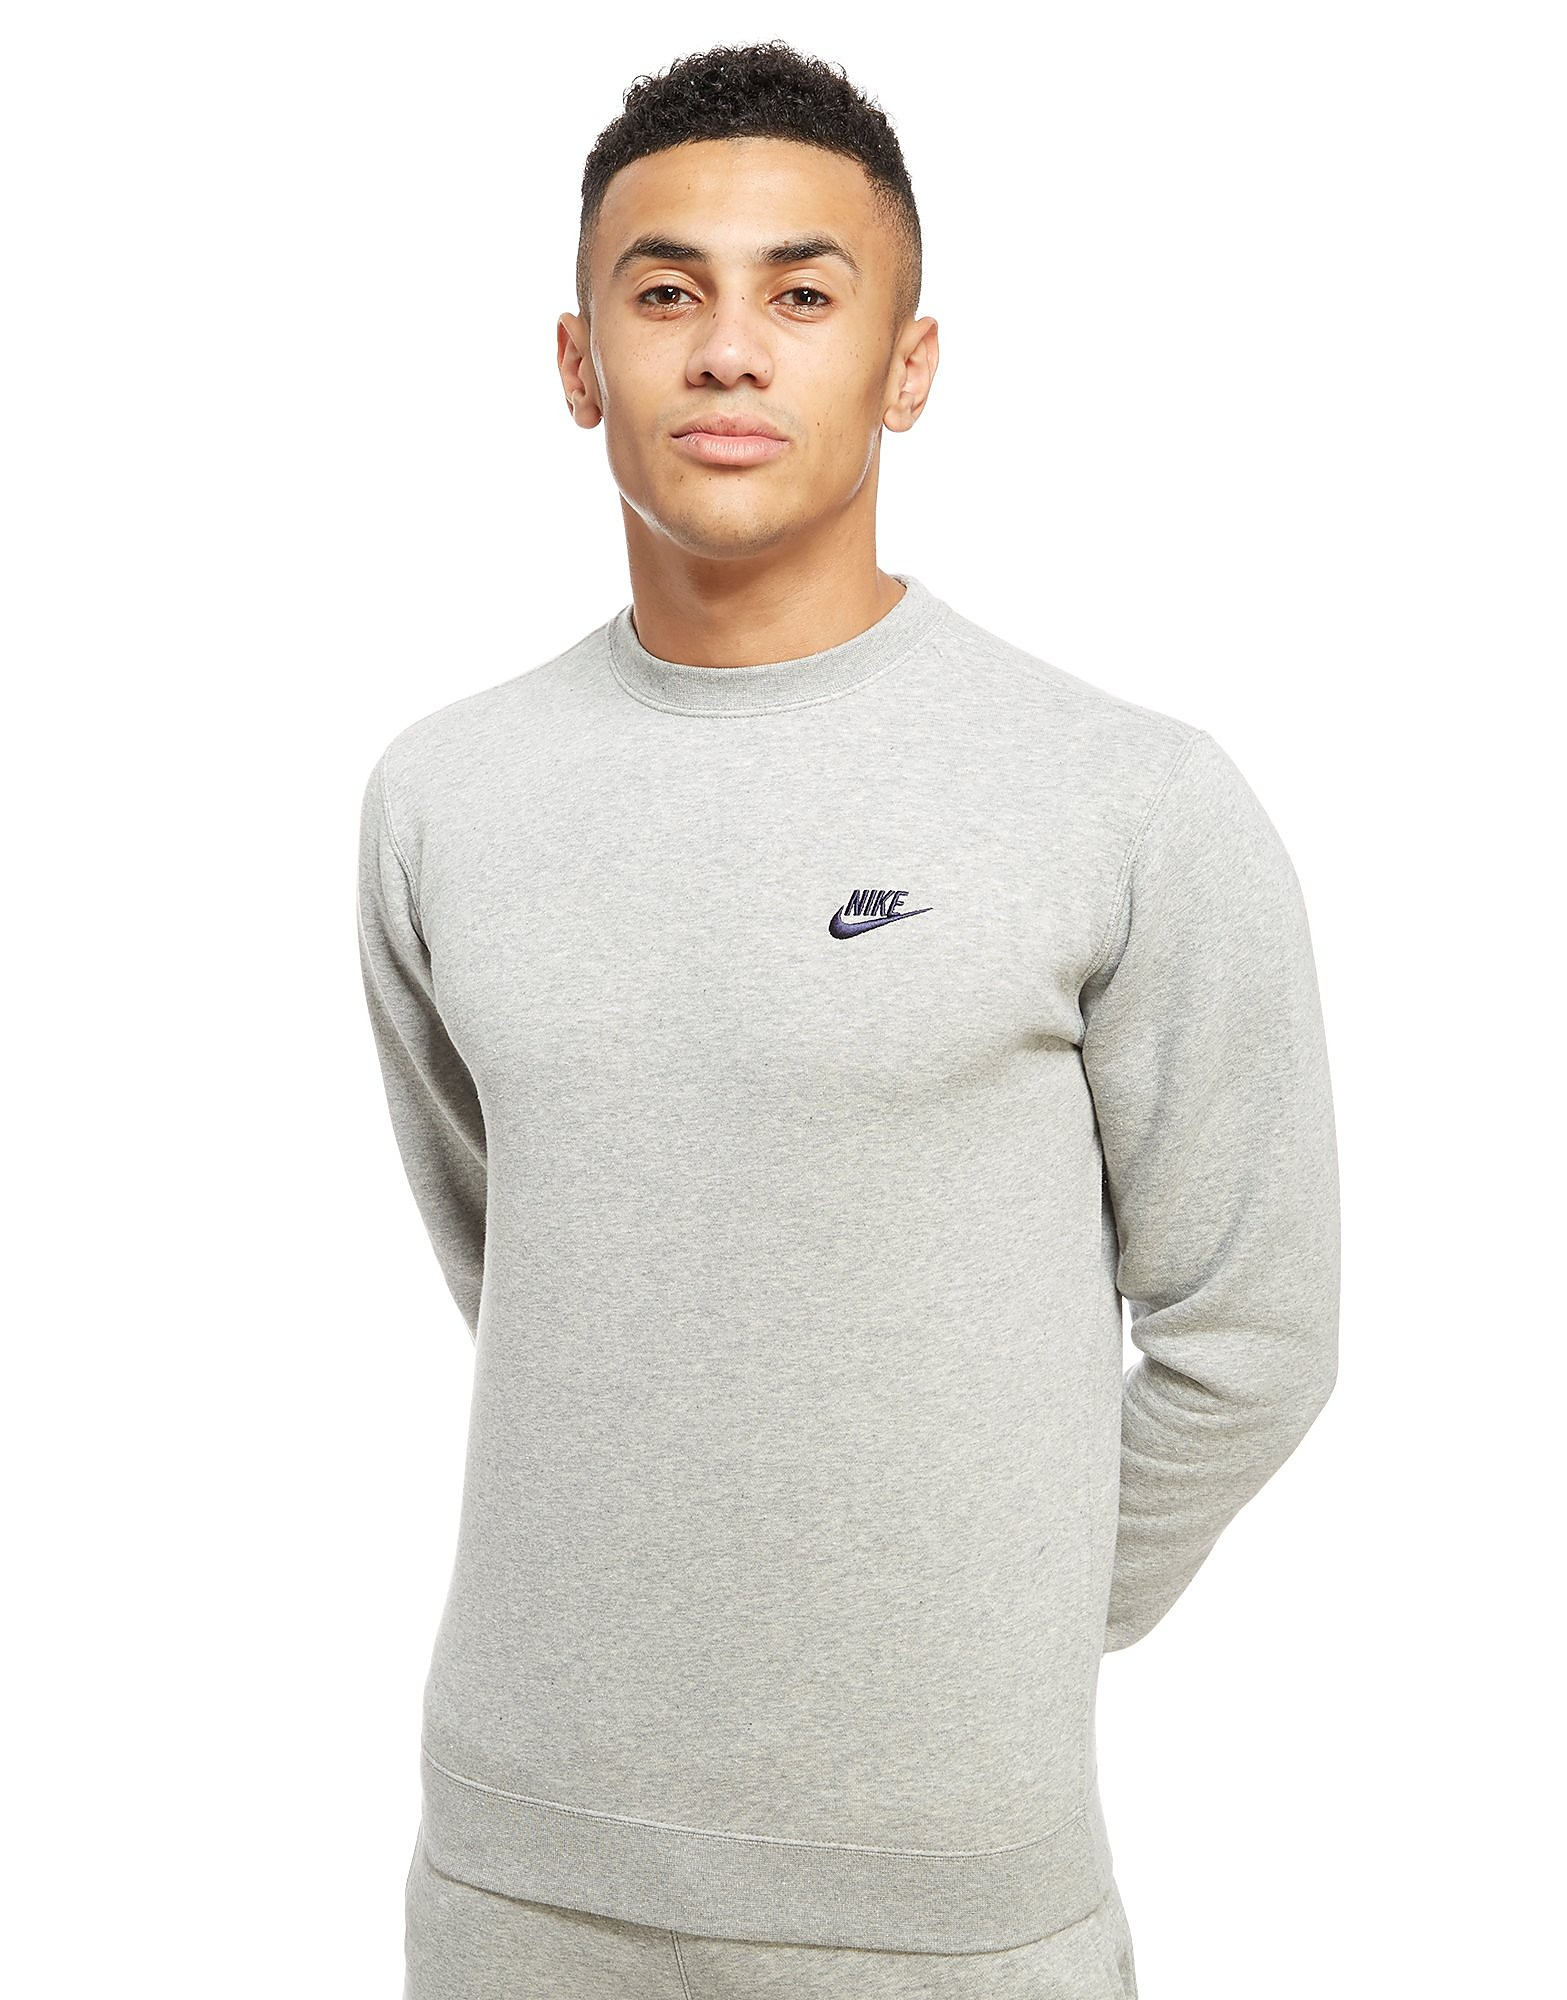 Nike Foundation Sweatshirt